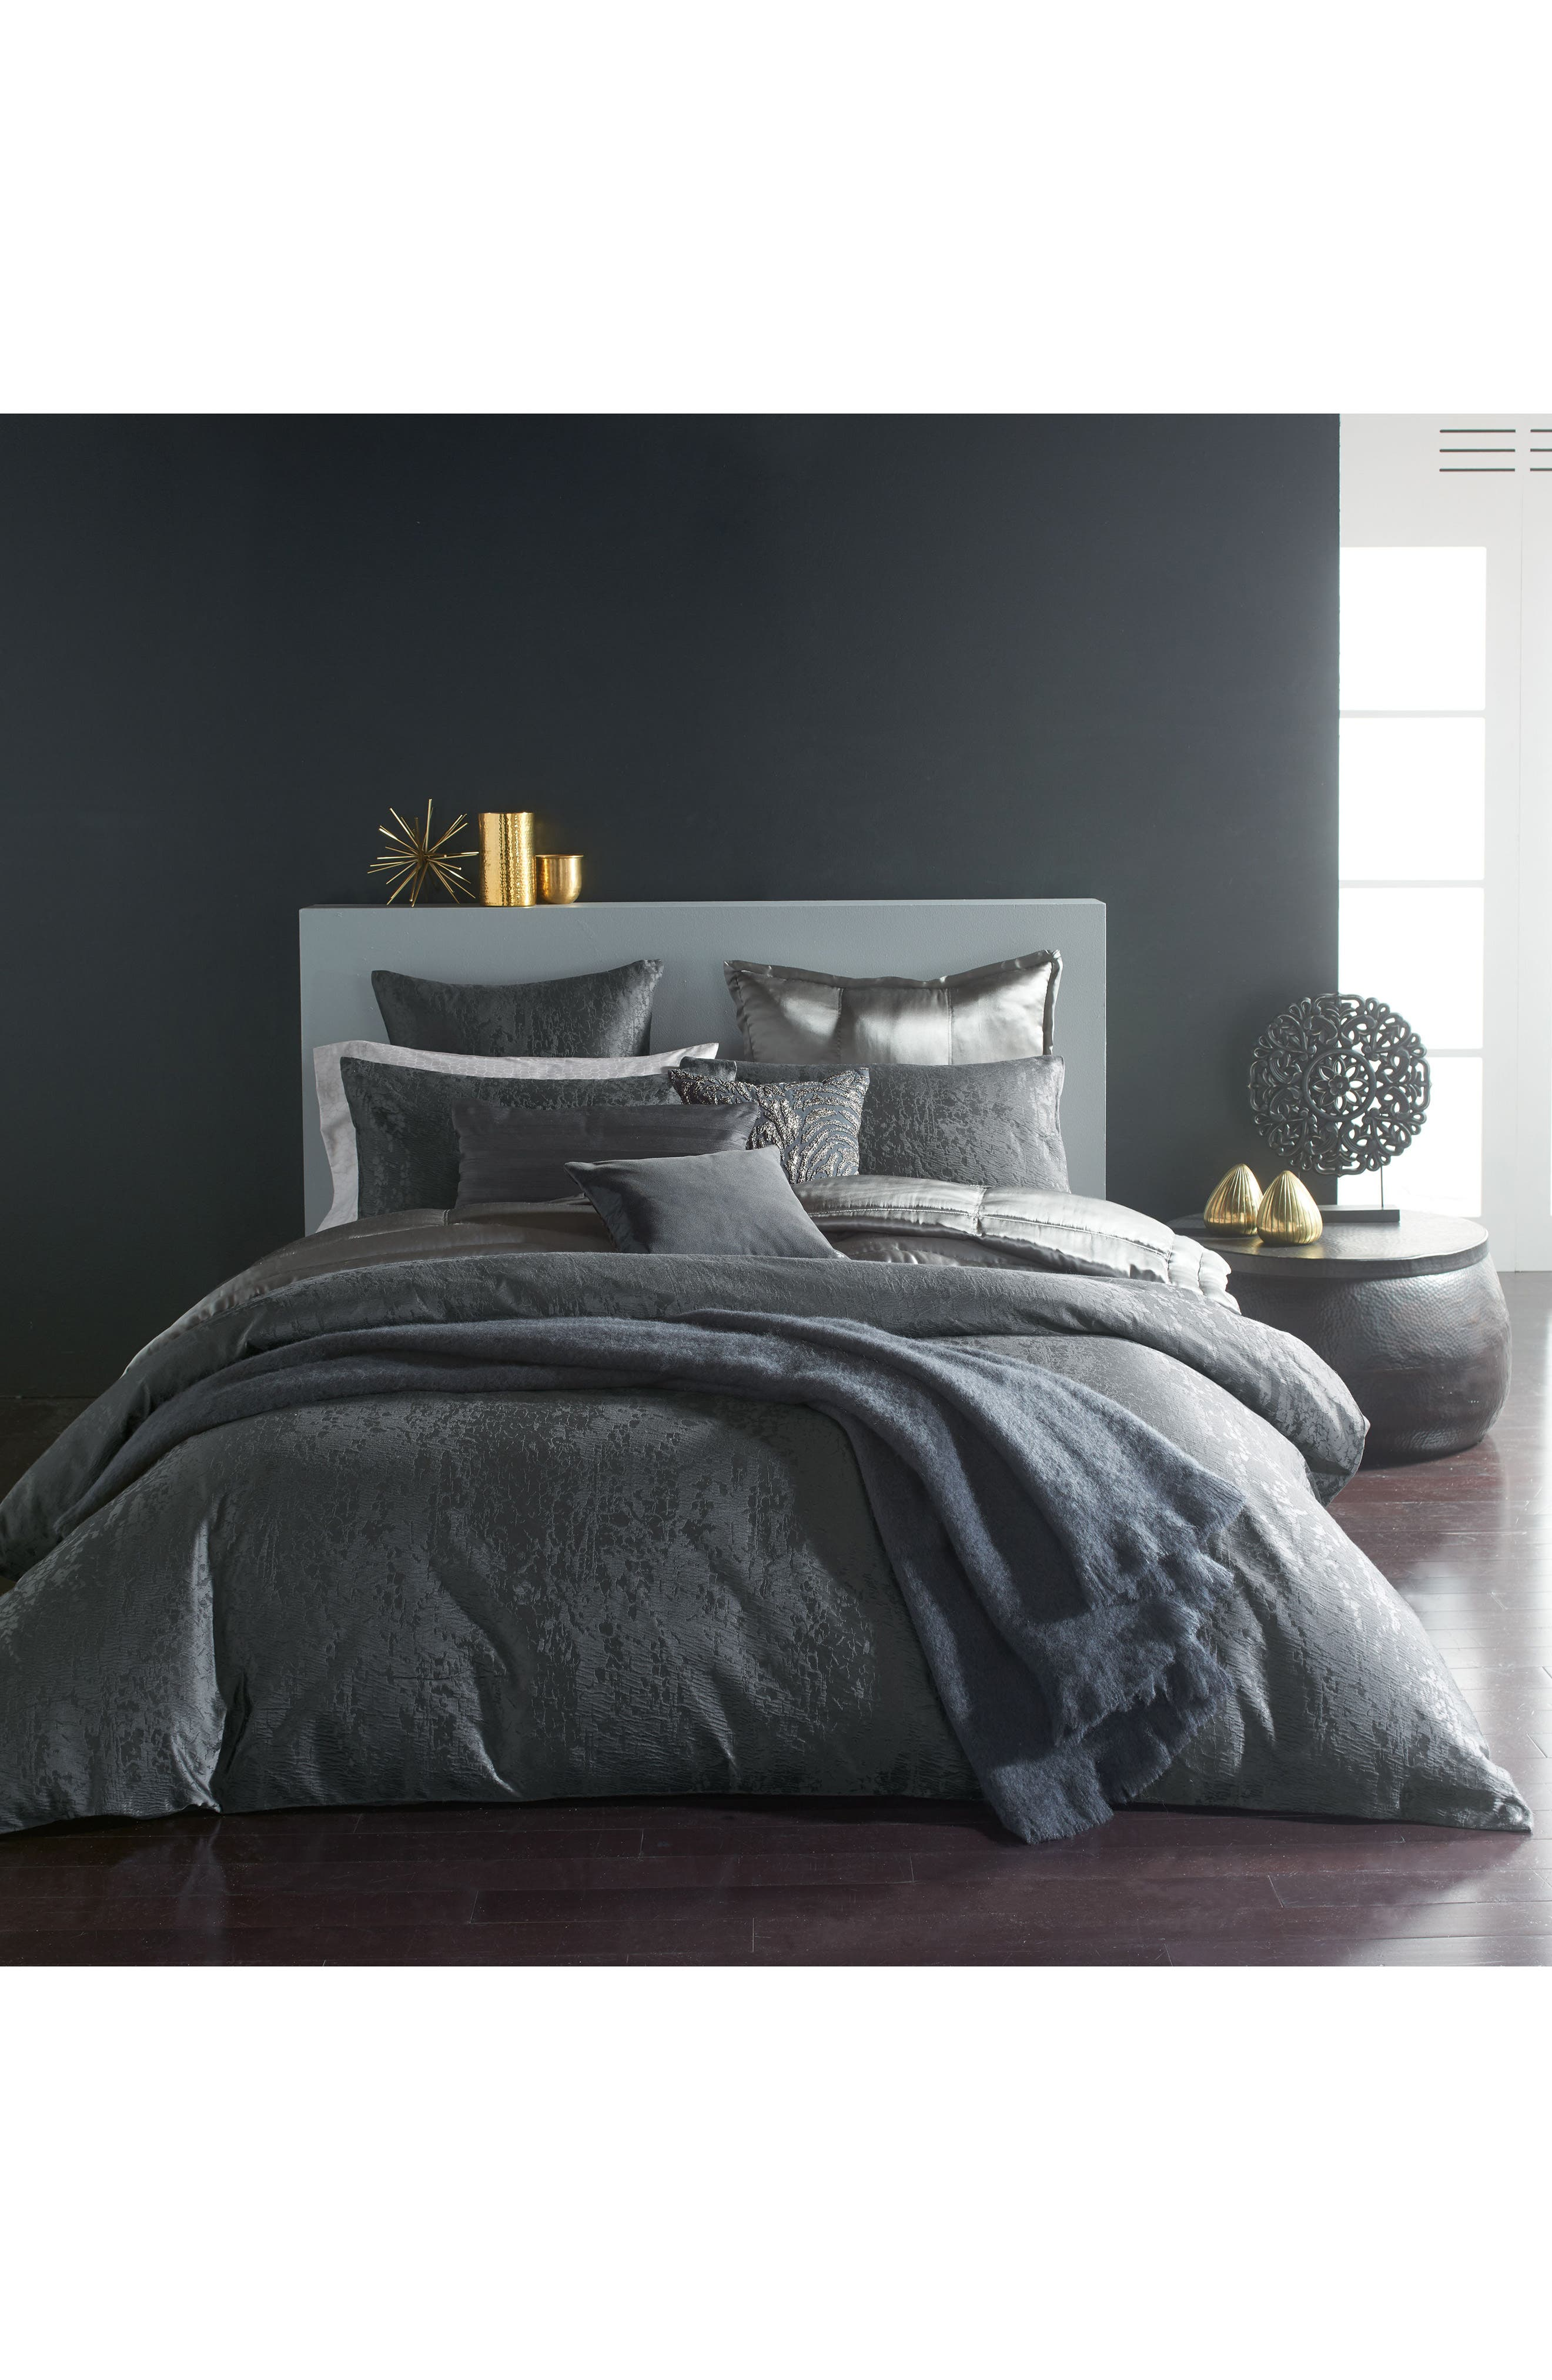 DONNA KARAN NEW YORK, Donna Karan Moonscape Euro Sham, Alternate thumbnail 3, color, CHARCOAL